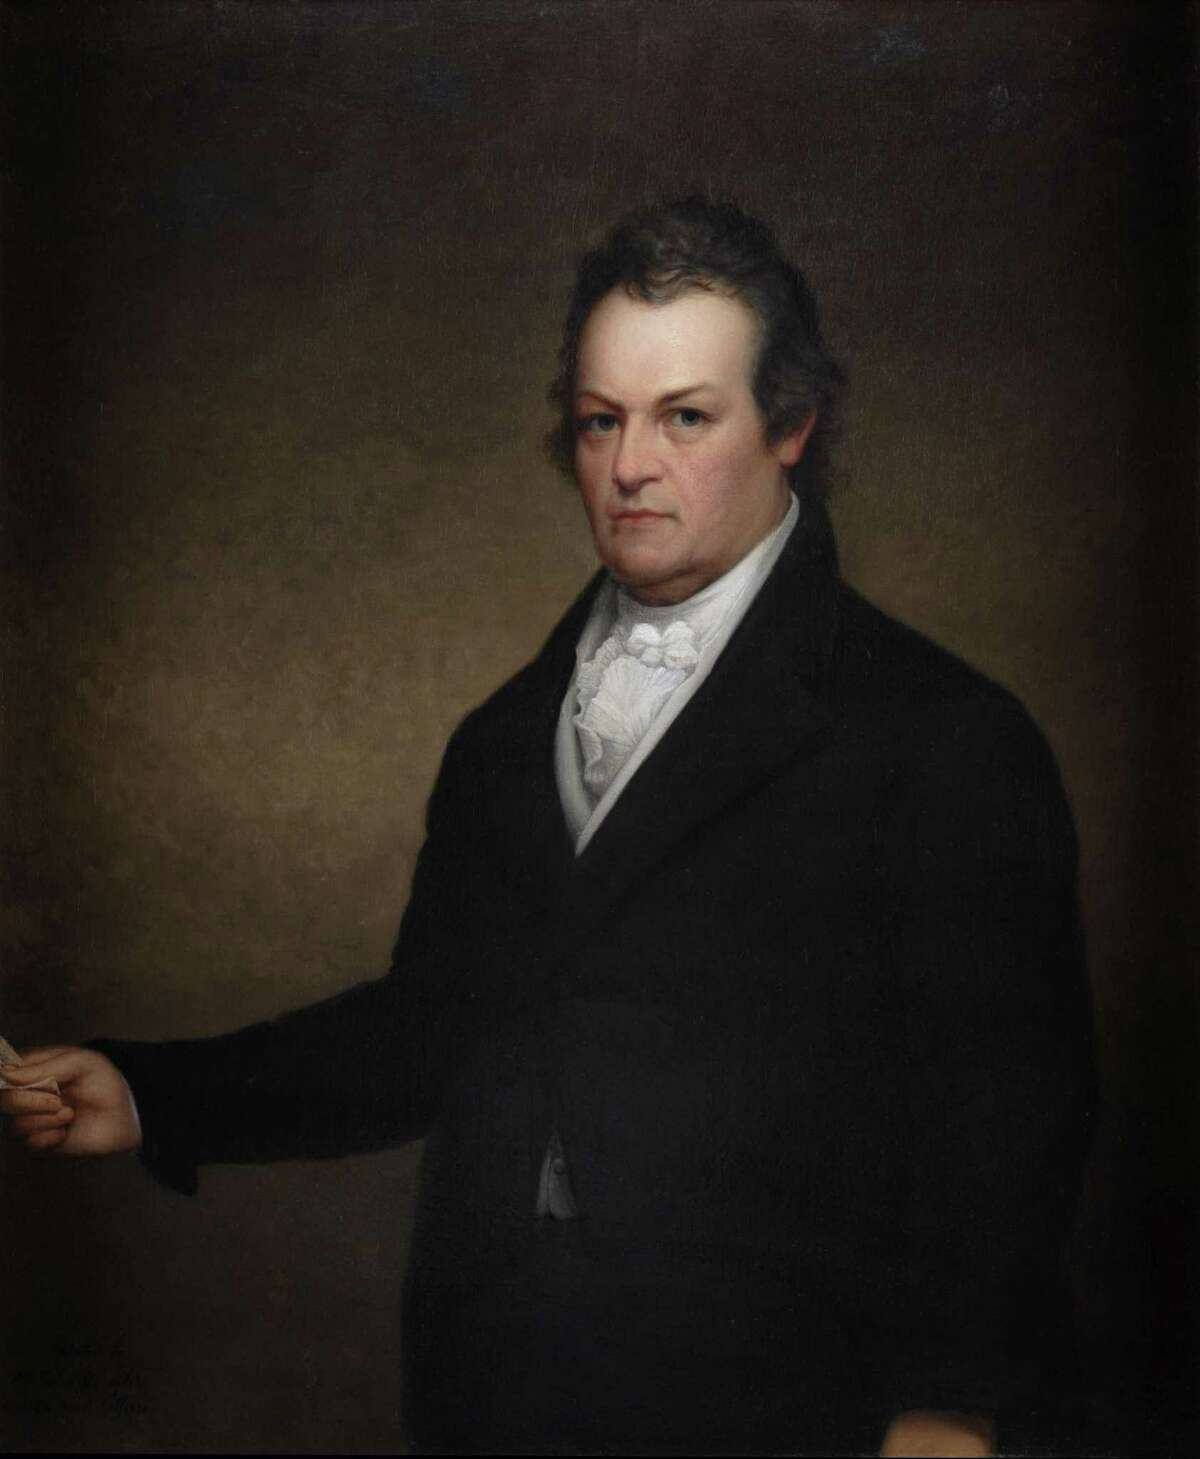 DeWitt Clinton, 6th Governor of New York, and the Federalist nominee for the 1812 U.S. presidential election. (State Archive) ORG XMIT: MER2014121612325187